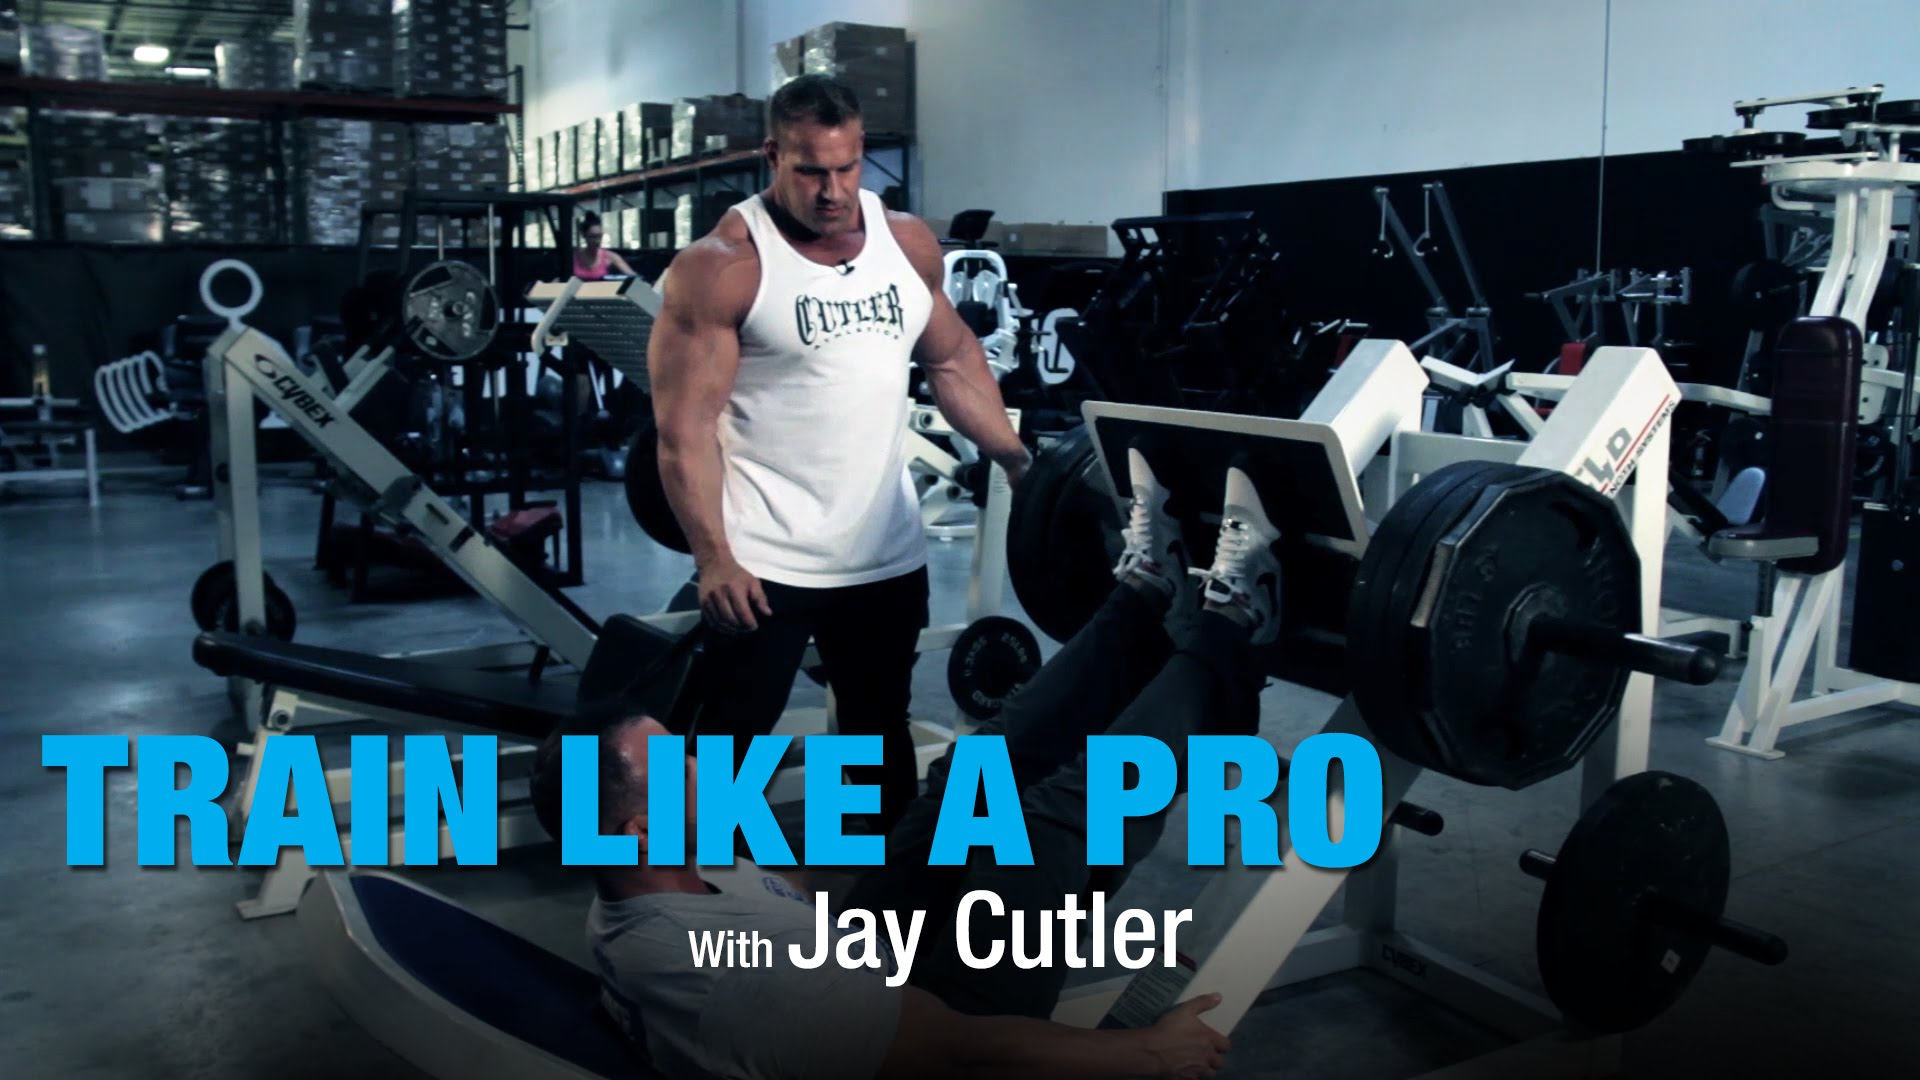 Leg-Press-with-Jay-Cutler-Train-Like-A-Pro-BPI-Sports-Ep.-6